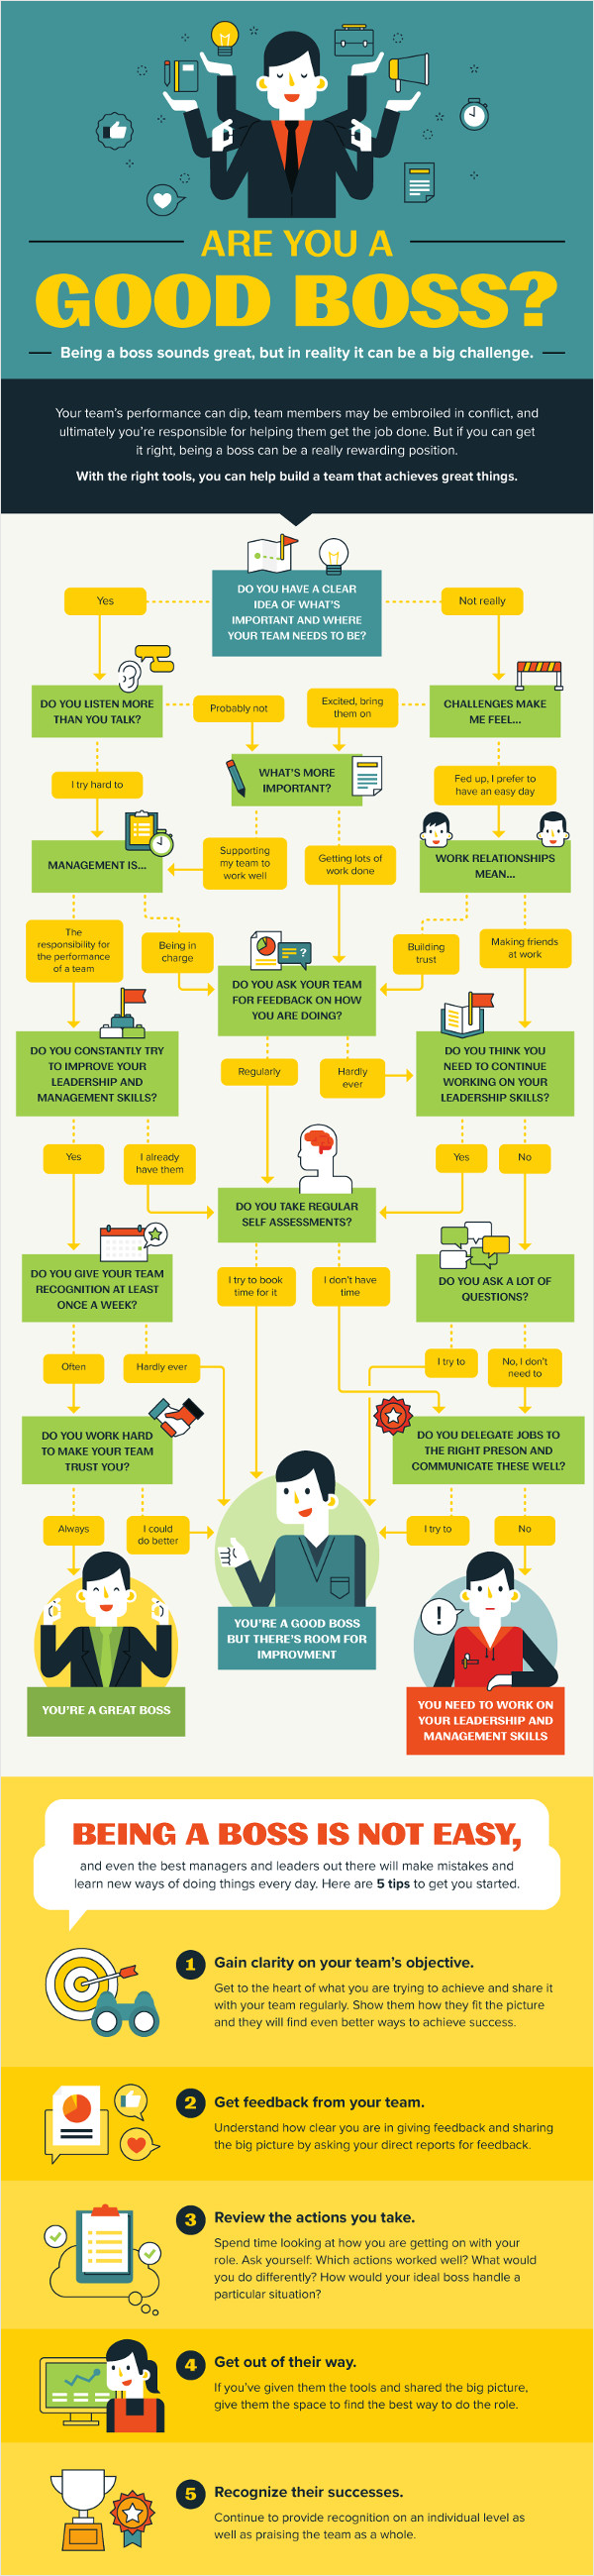 21 creative flowchart examples for making important life decisions